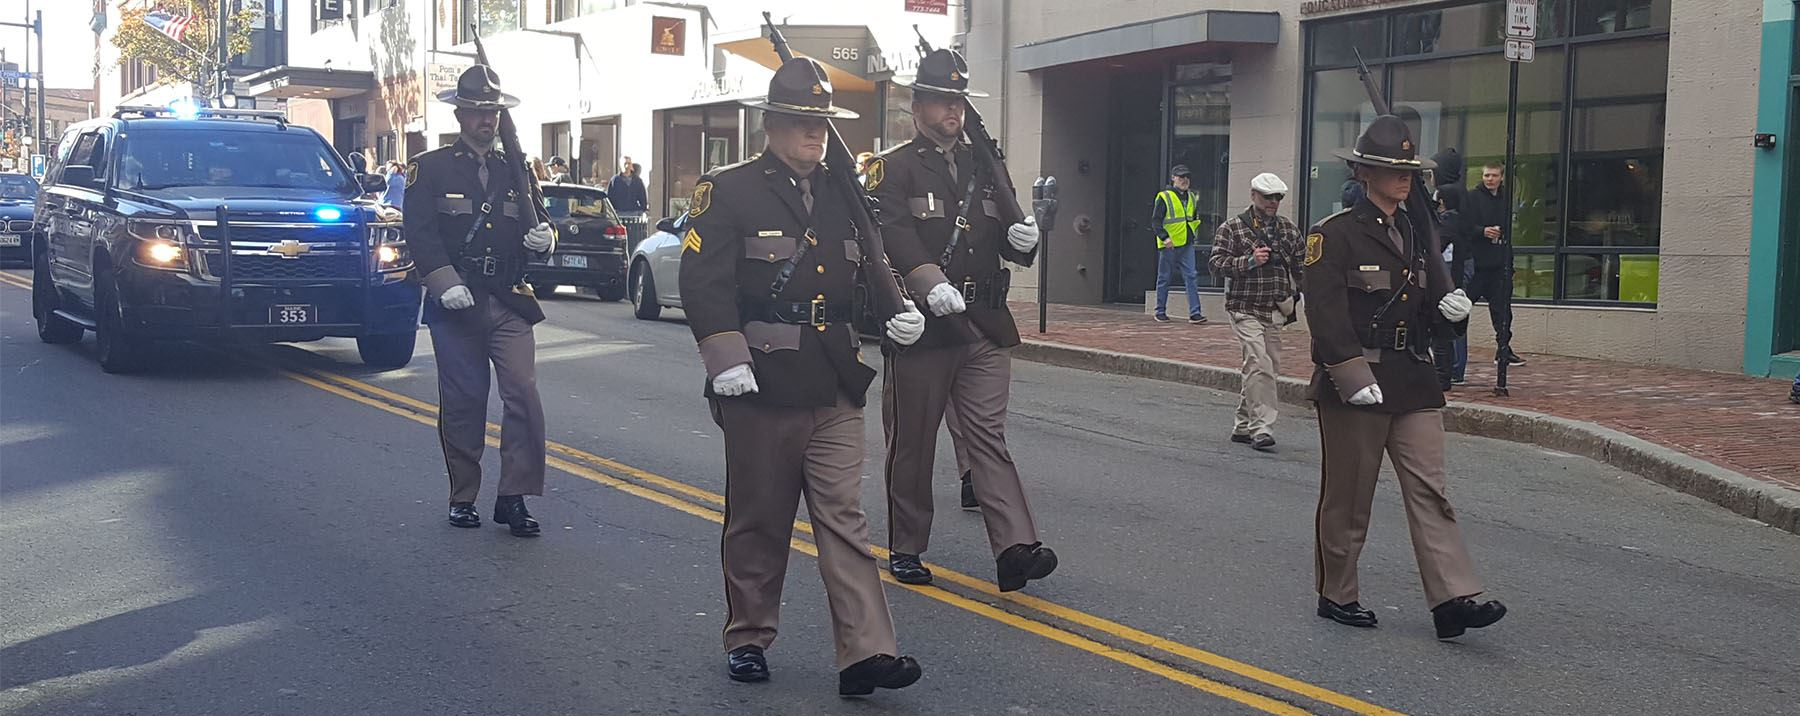 Cumberland County Sheriff - Official Website | Official Website